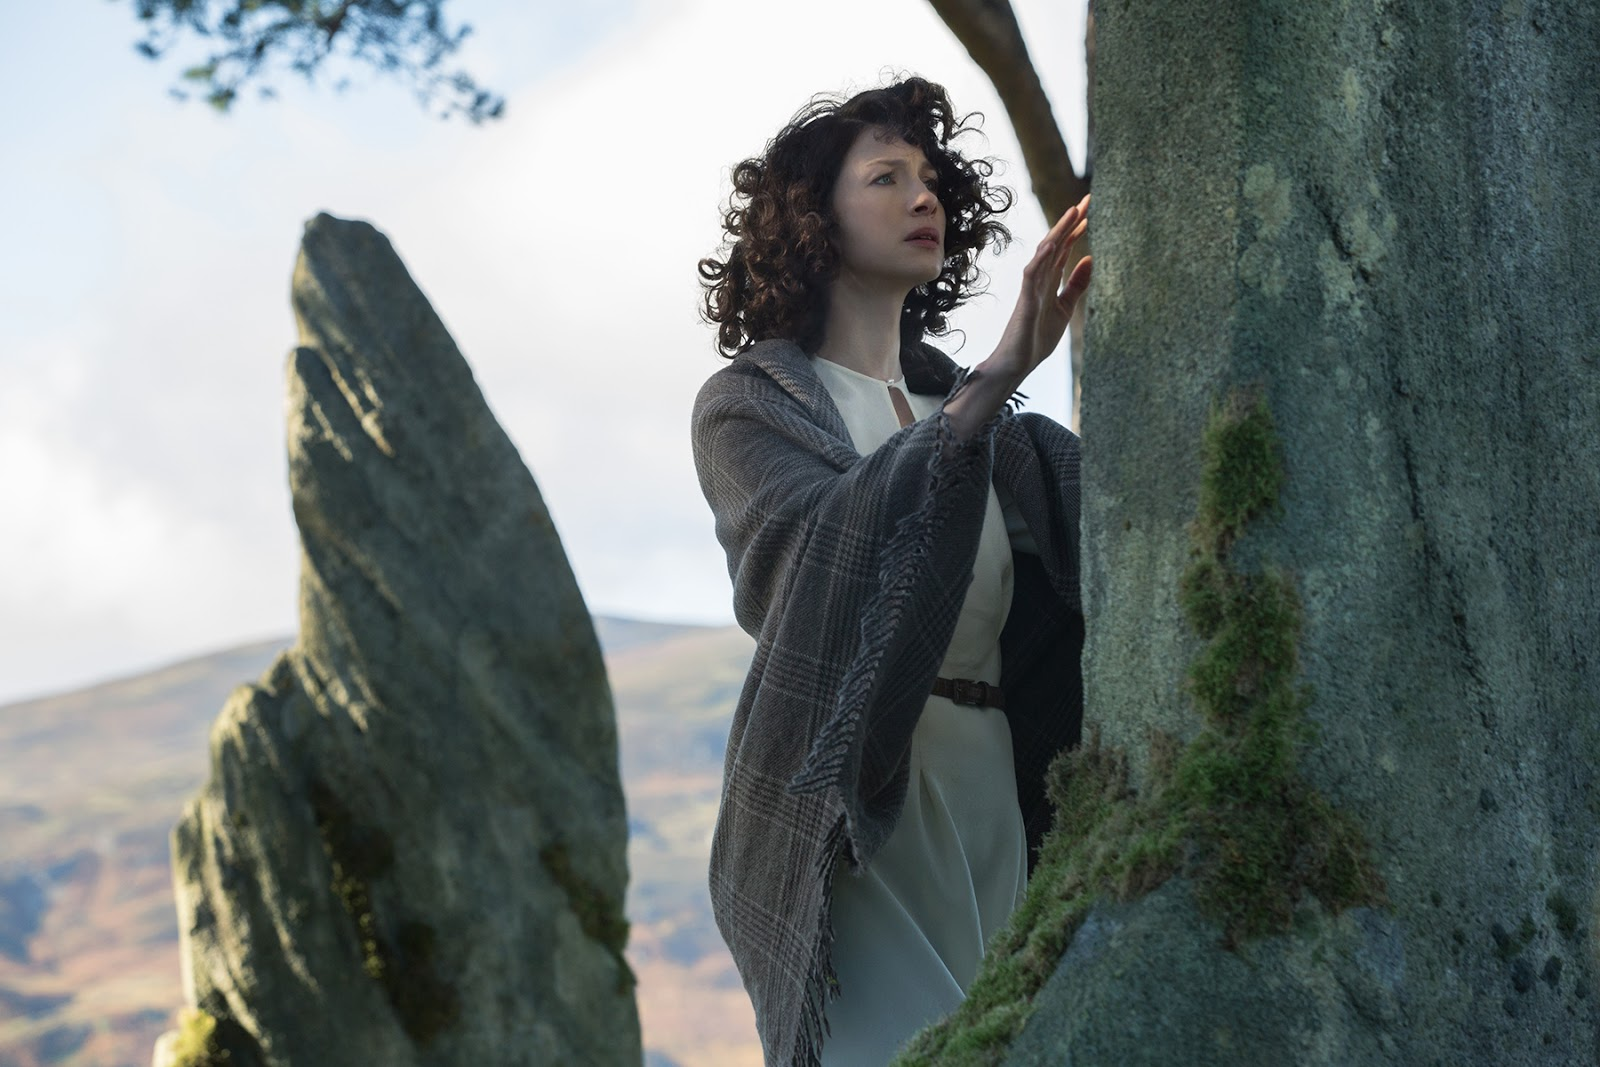 Outlander life lessons